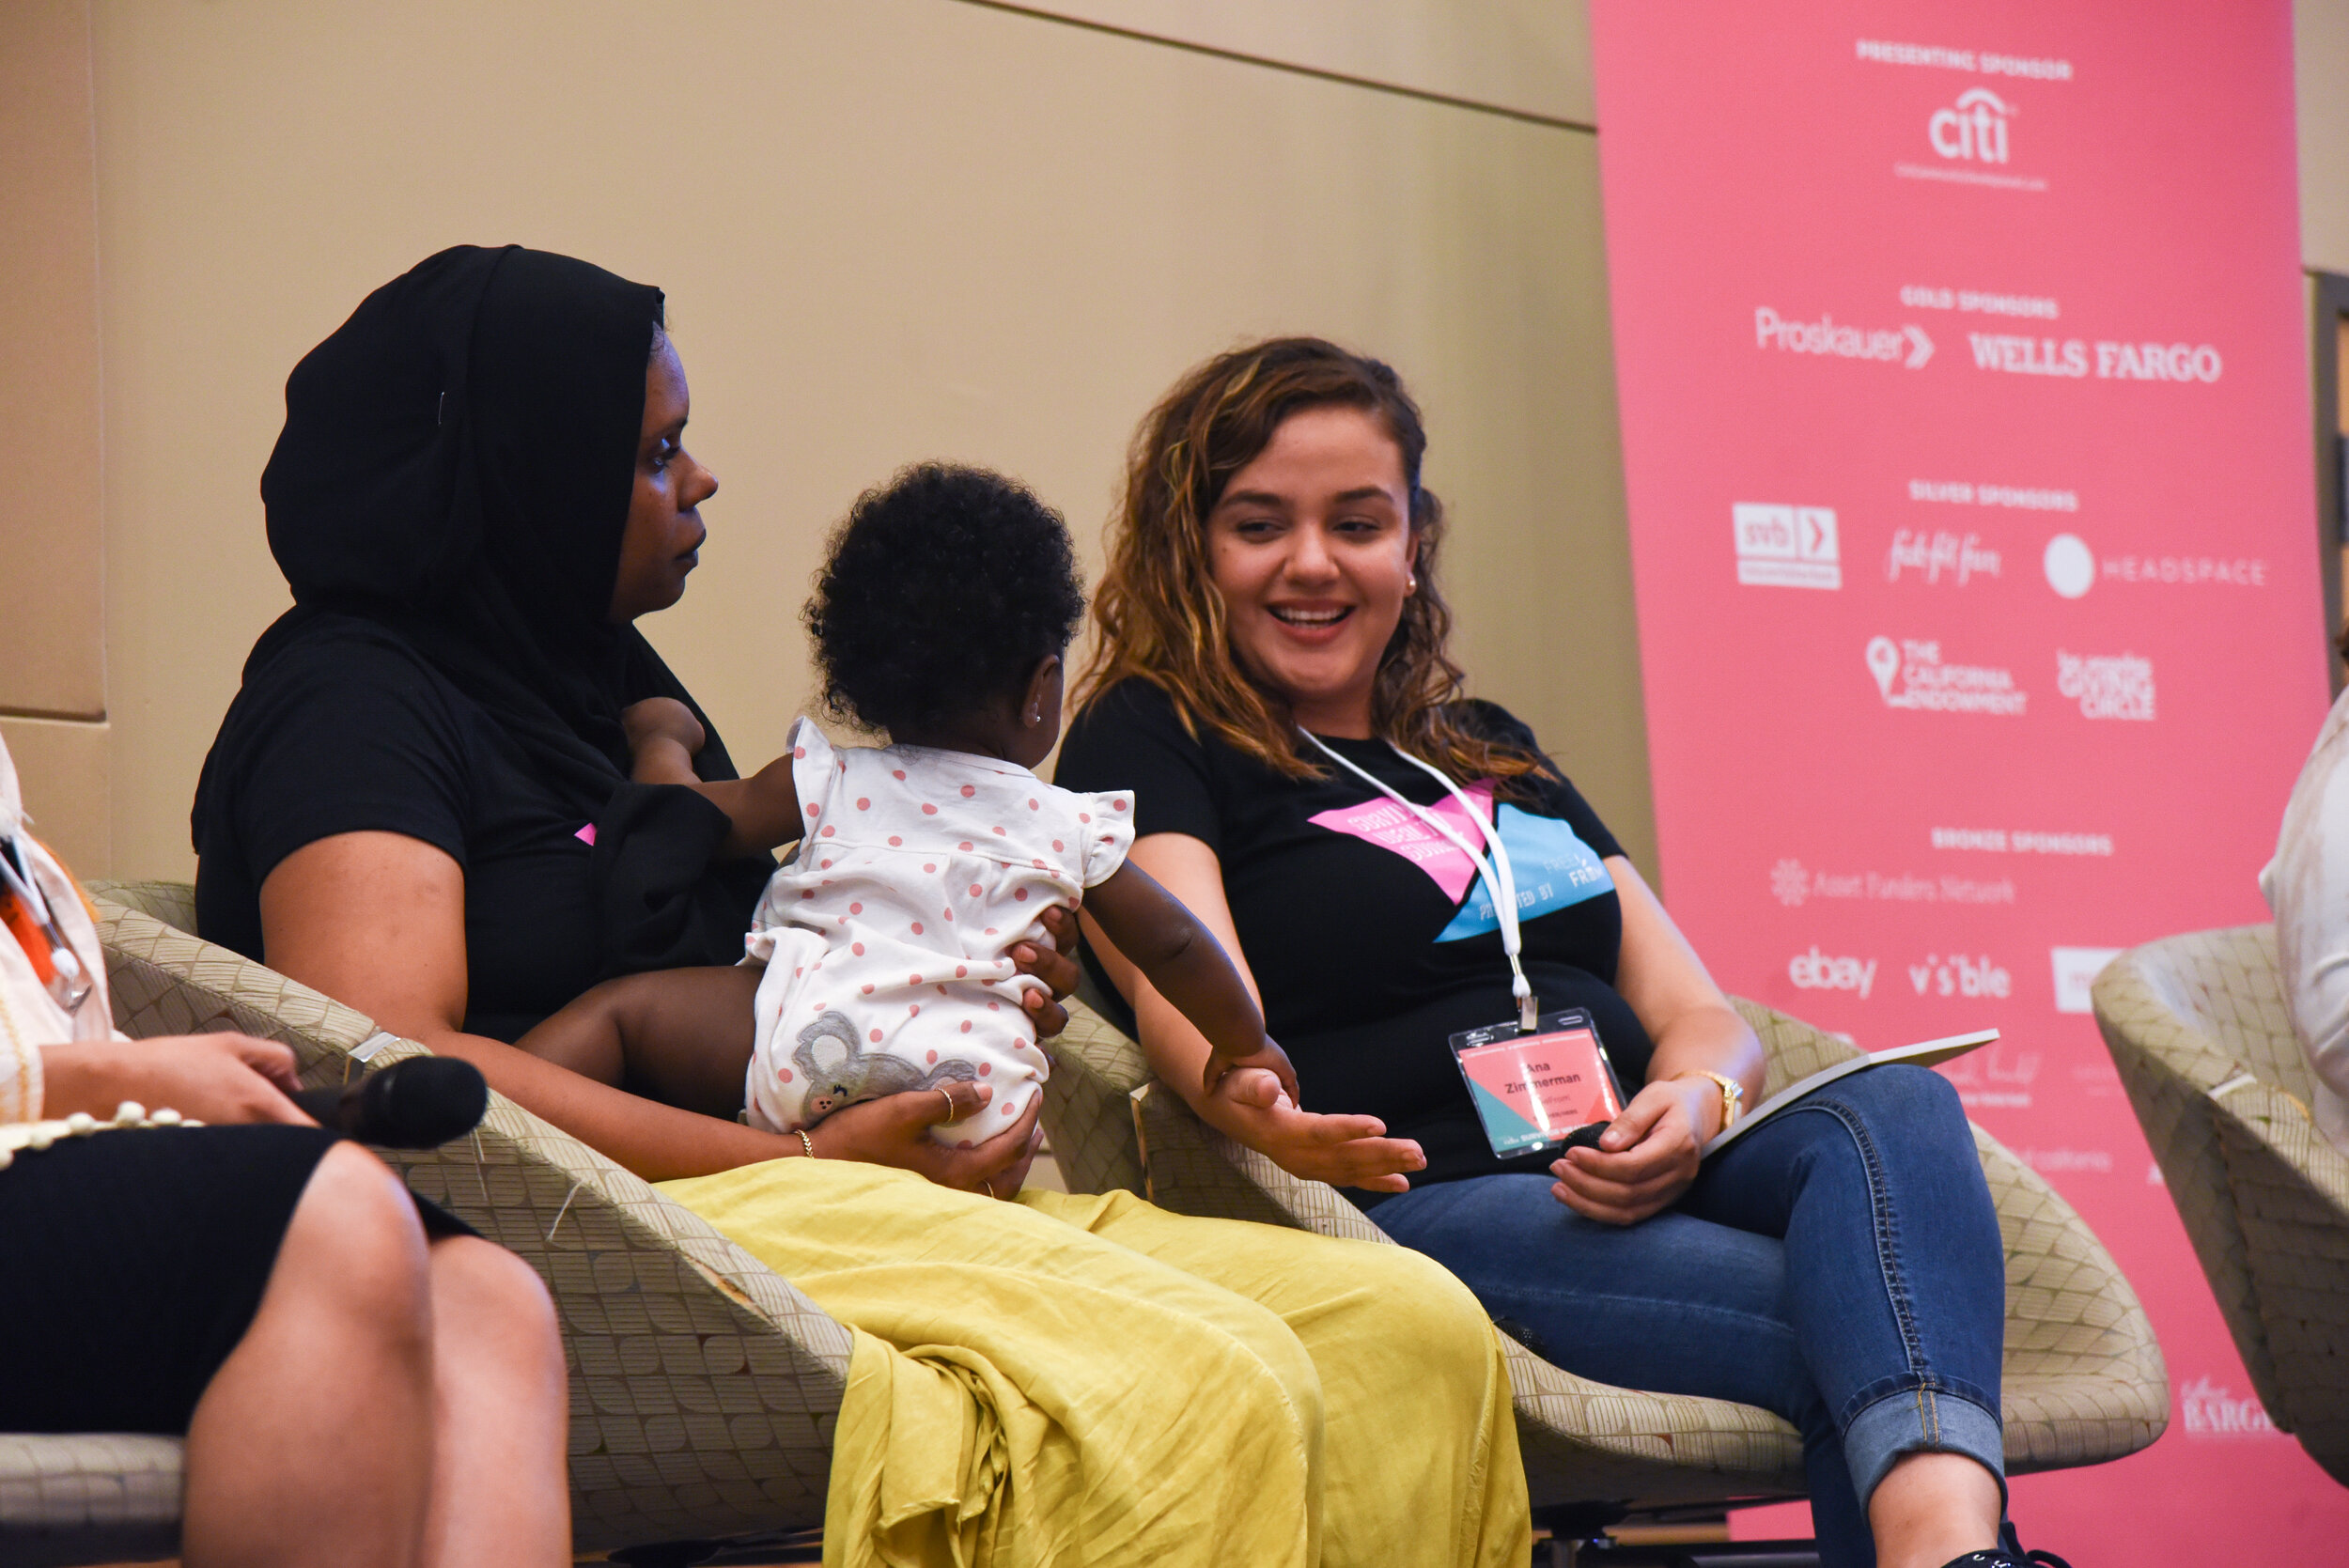 Two adults sitting on a stage, one holding a baby in their lap. The adult with the baby in their lap looks out of frame intently while the other adult smiles and interacts with the baby.